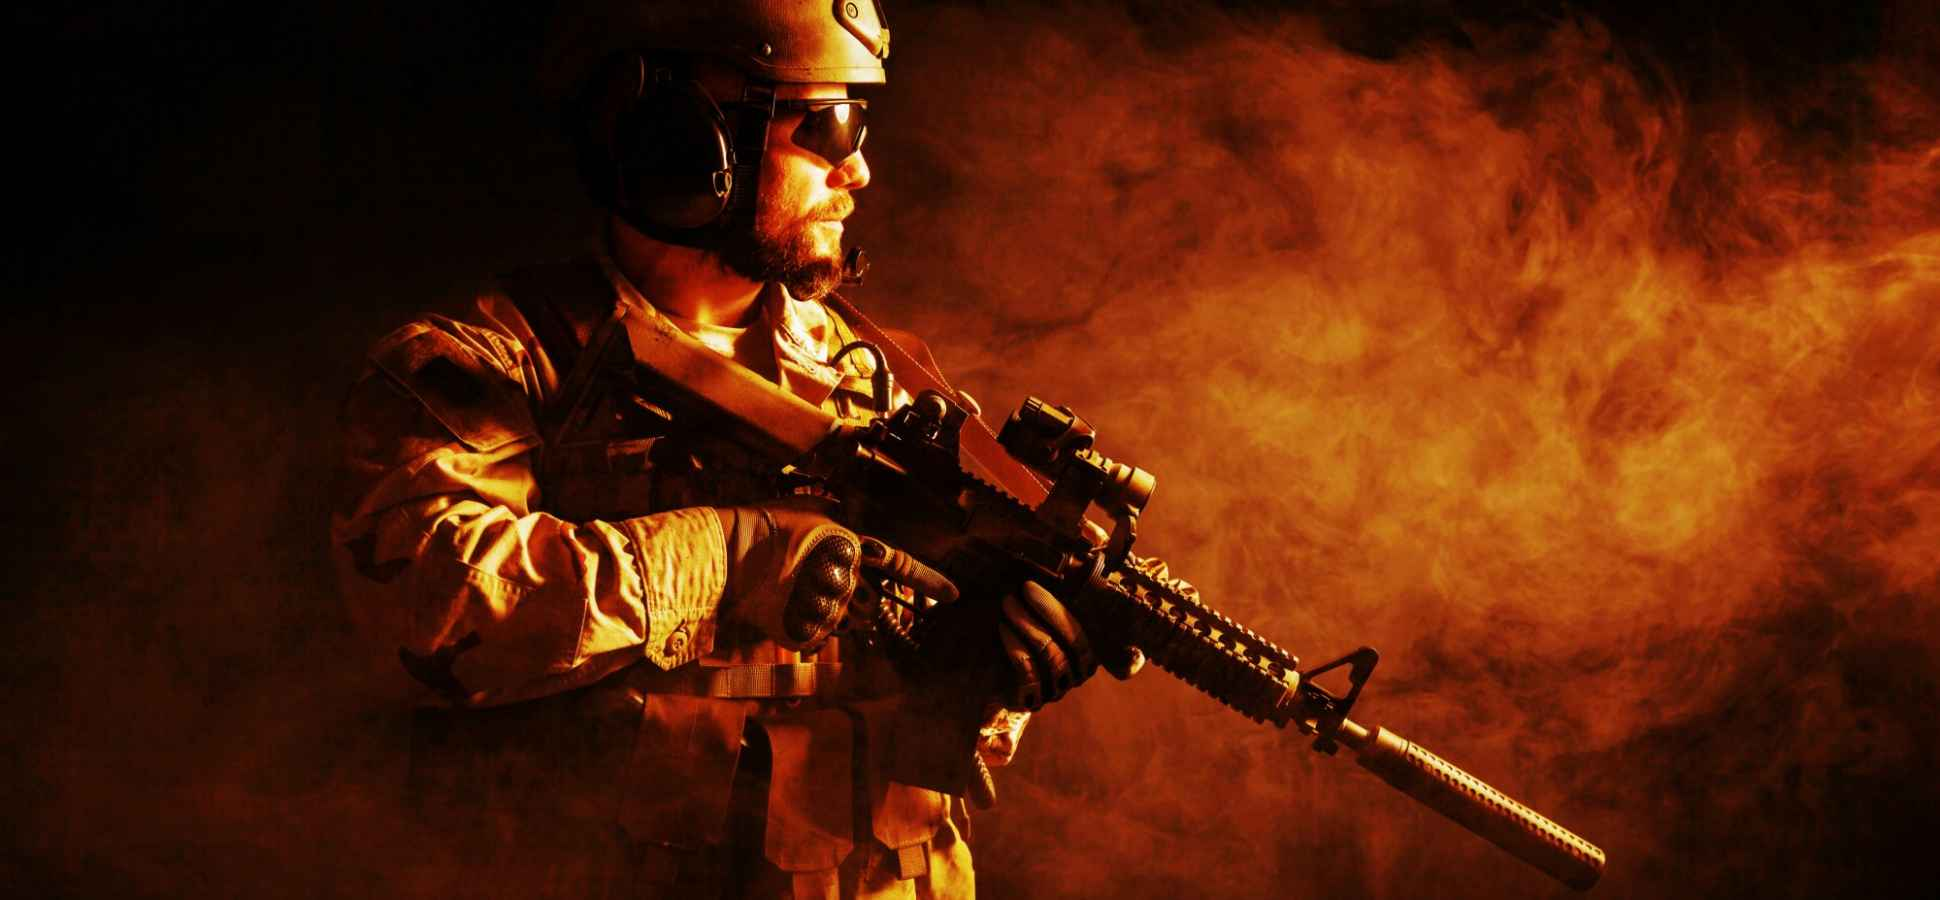 3 Qualities Being A Green Beret Taught Me About Mental Strength